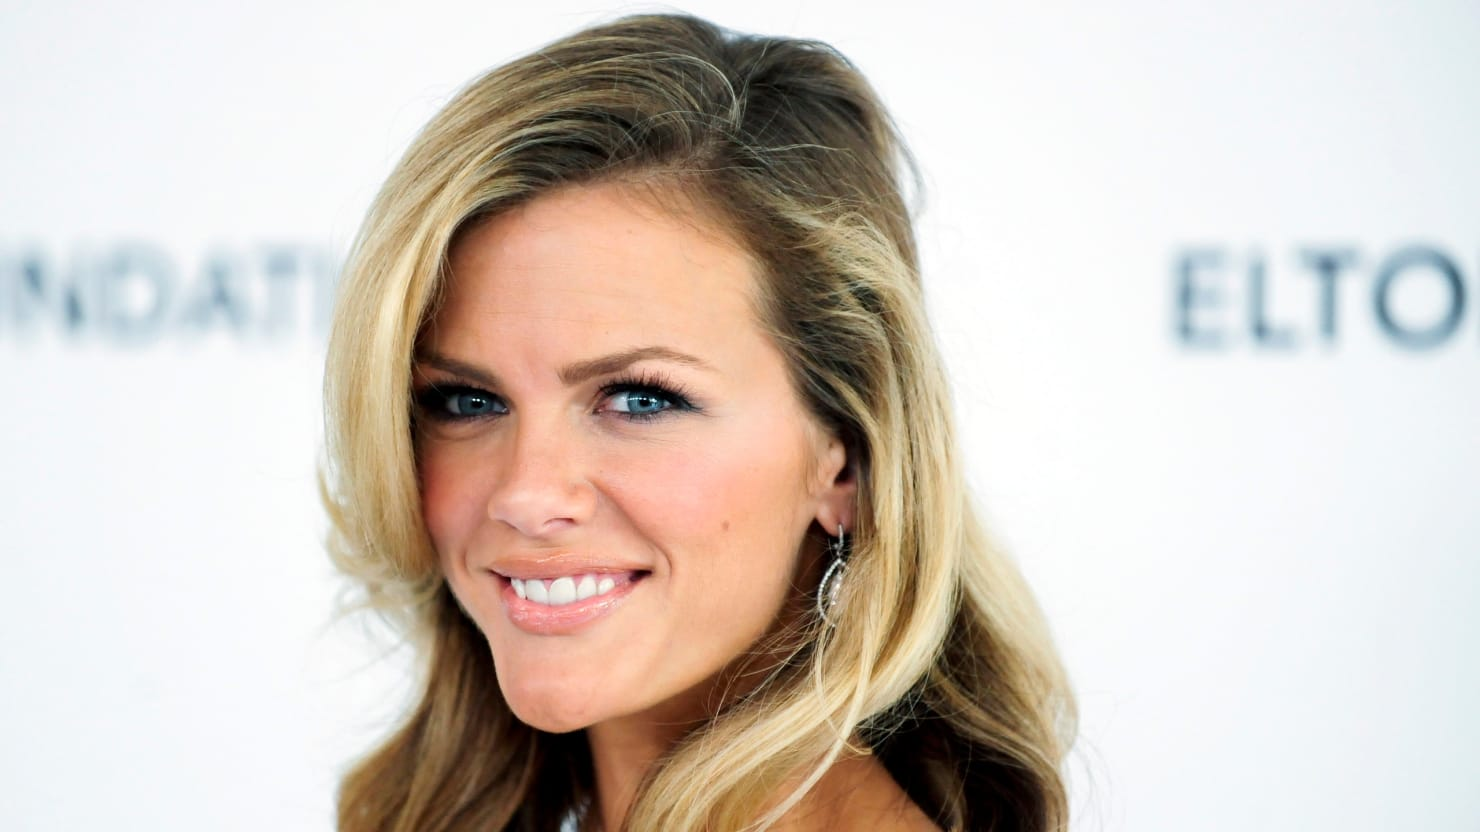 Brooklyn Decker on Her 'Horrible' Modeling Experiences, Marriage, and Cracking Hollywood